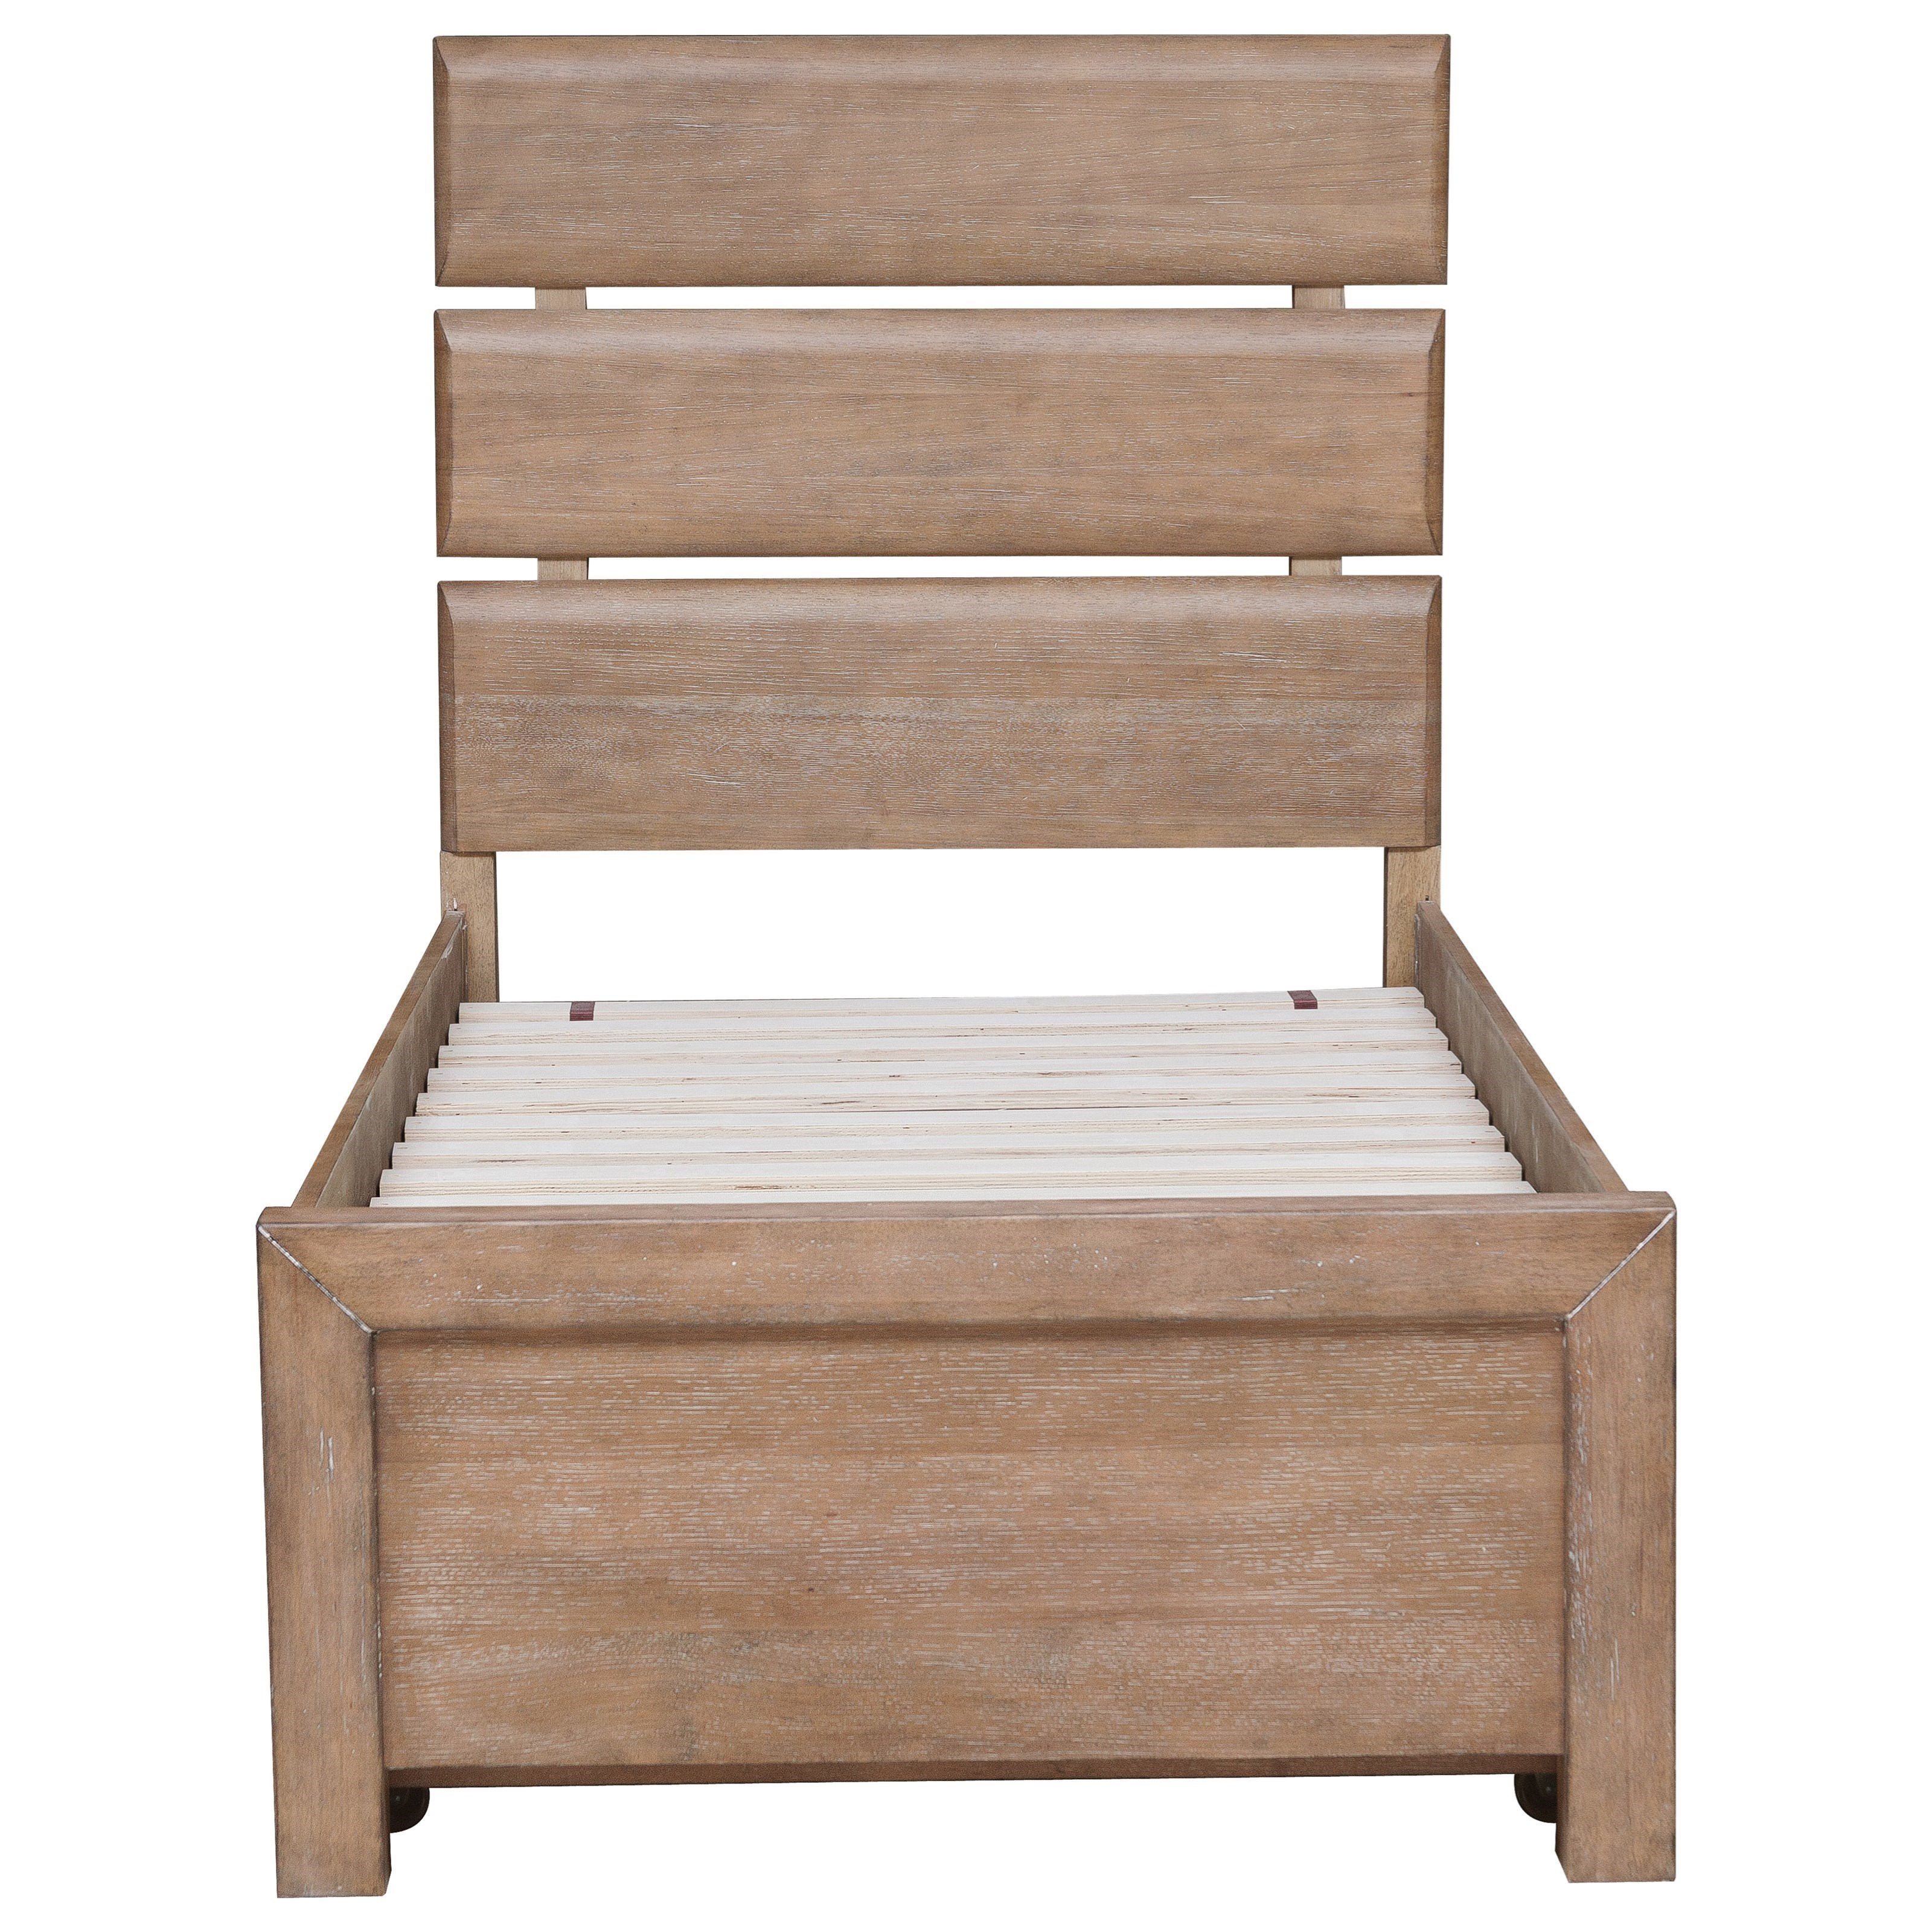 Asherton Rustic Twin Plank Bed Morris Home Panel Beds